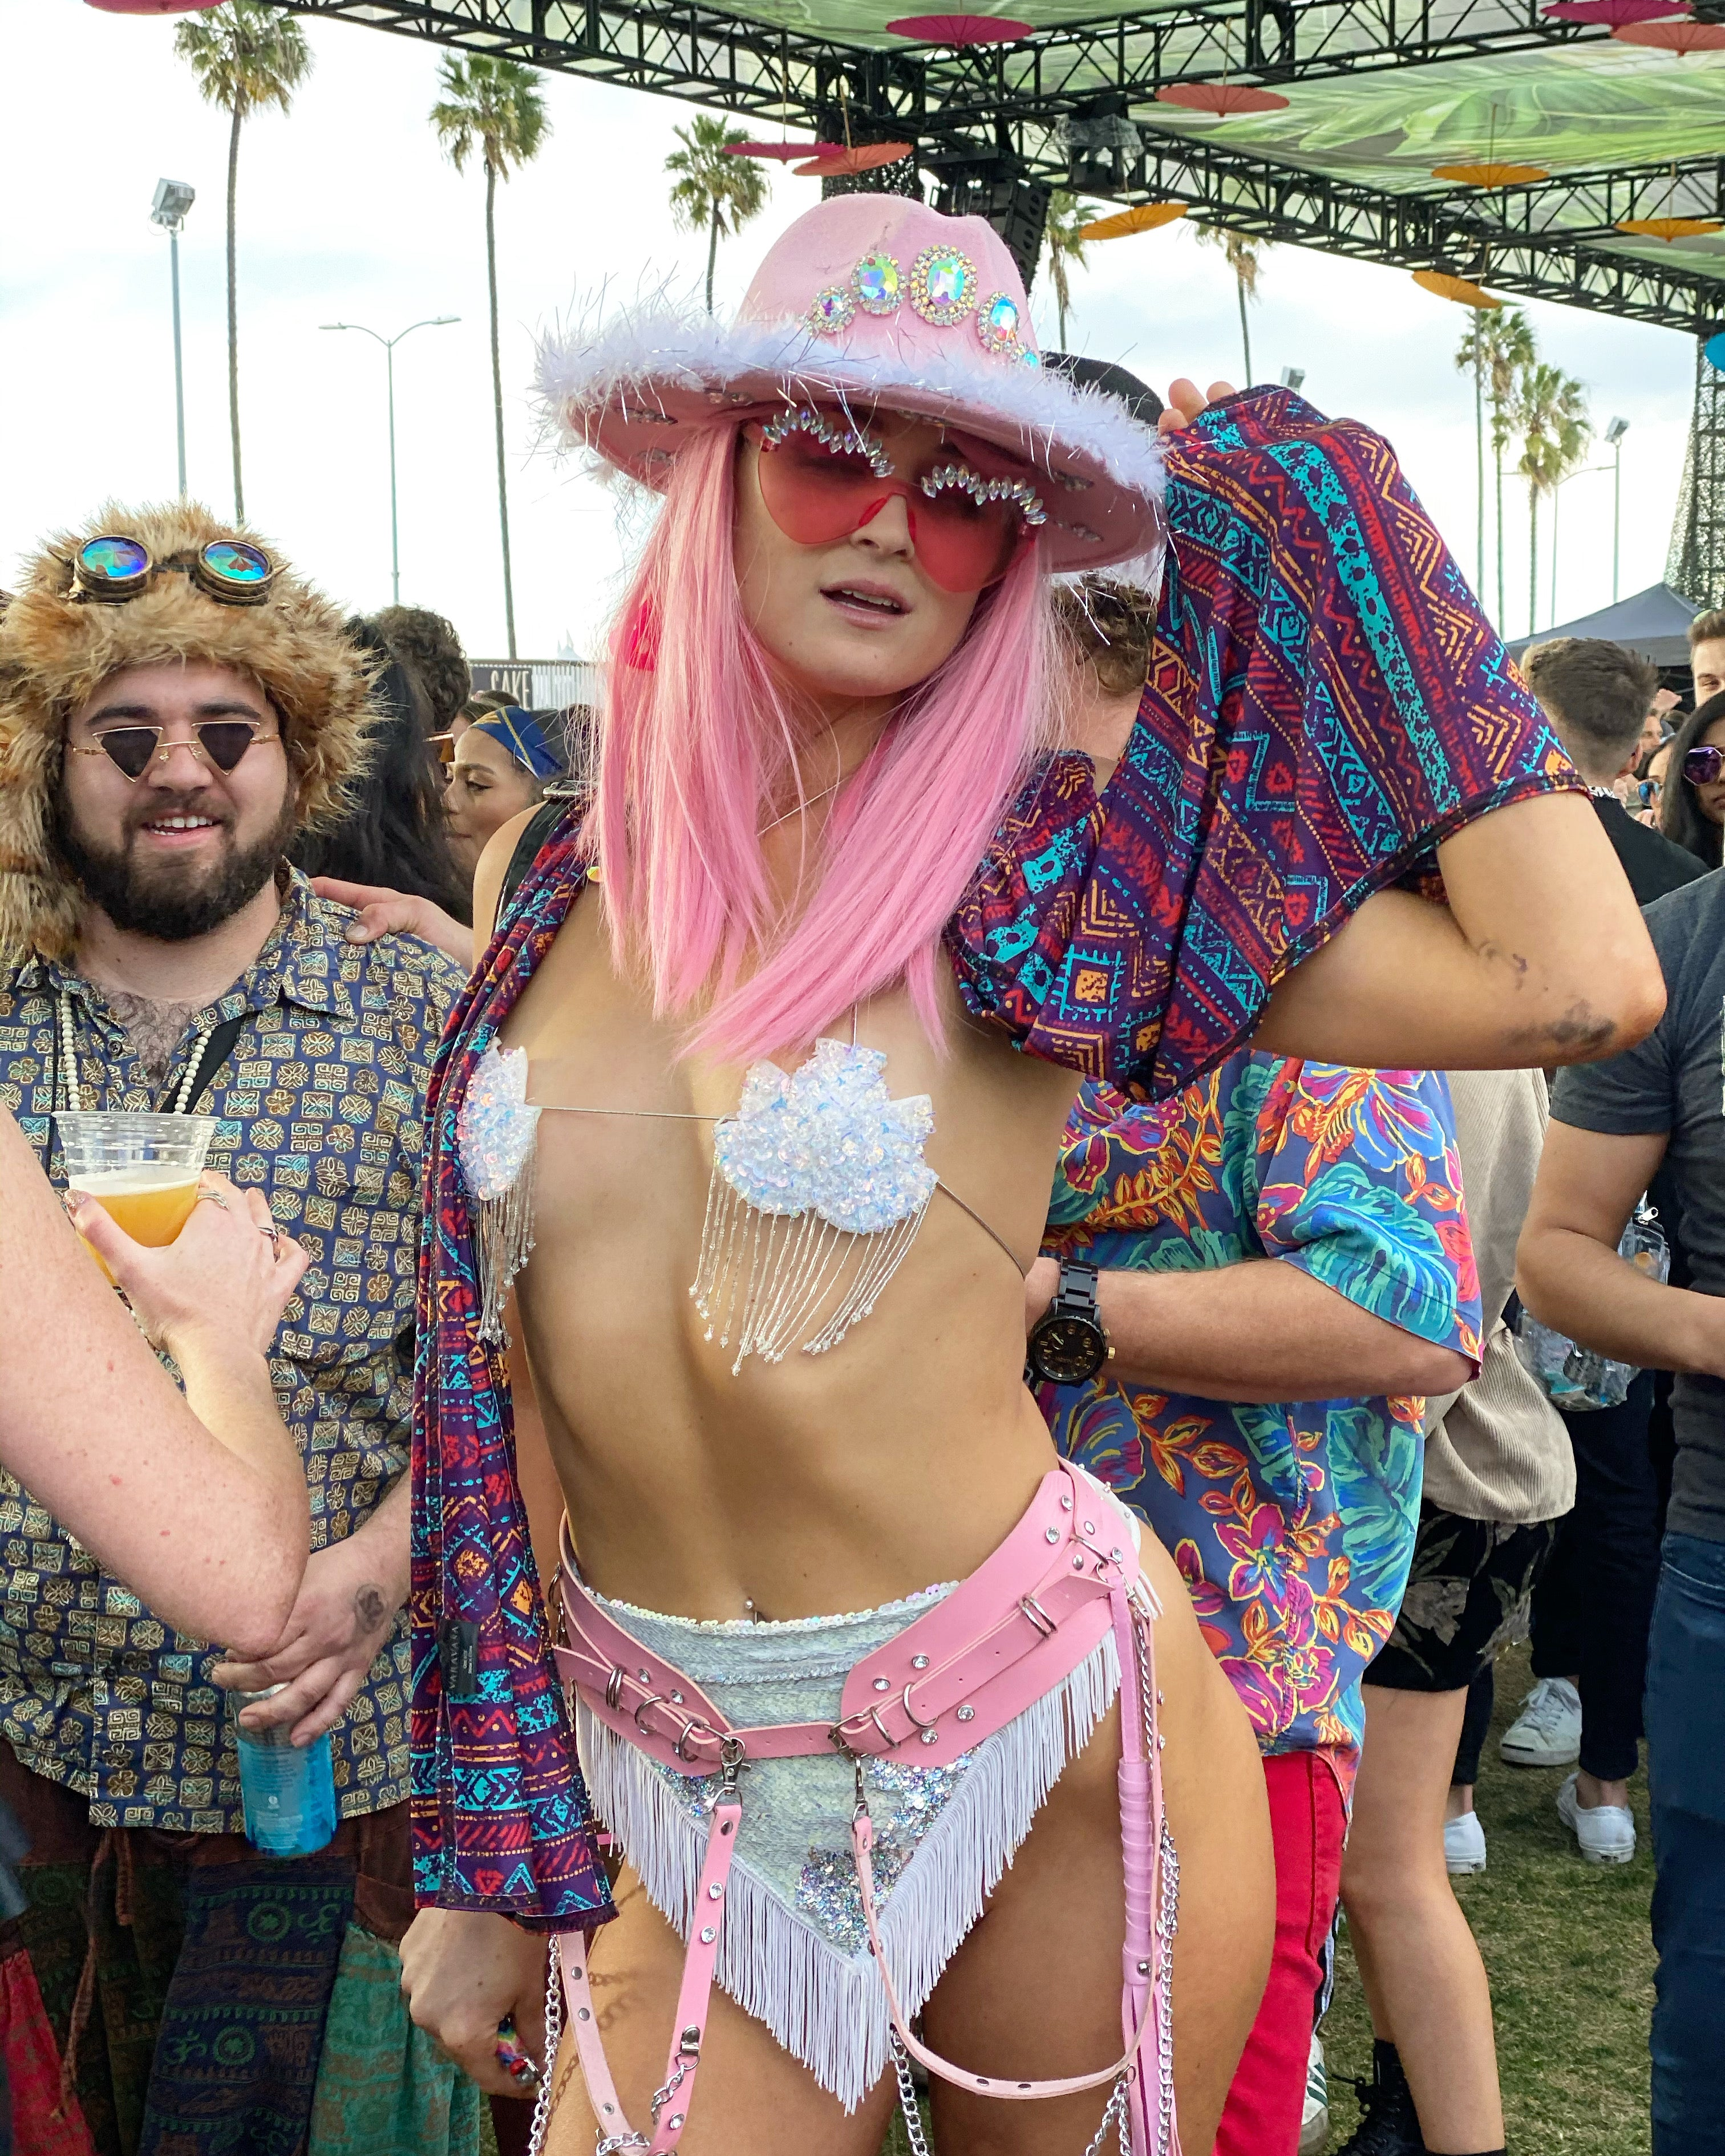 The types of people you see at a music festival. People you see at a Rave. Personalities at a music festival. Funny article. Music Festival.